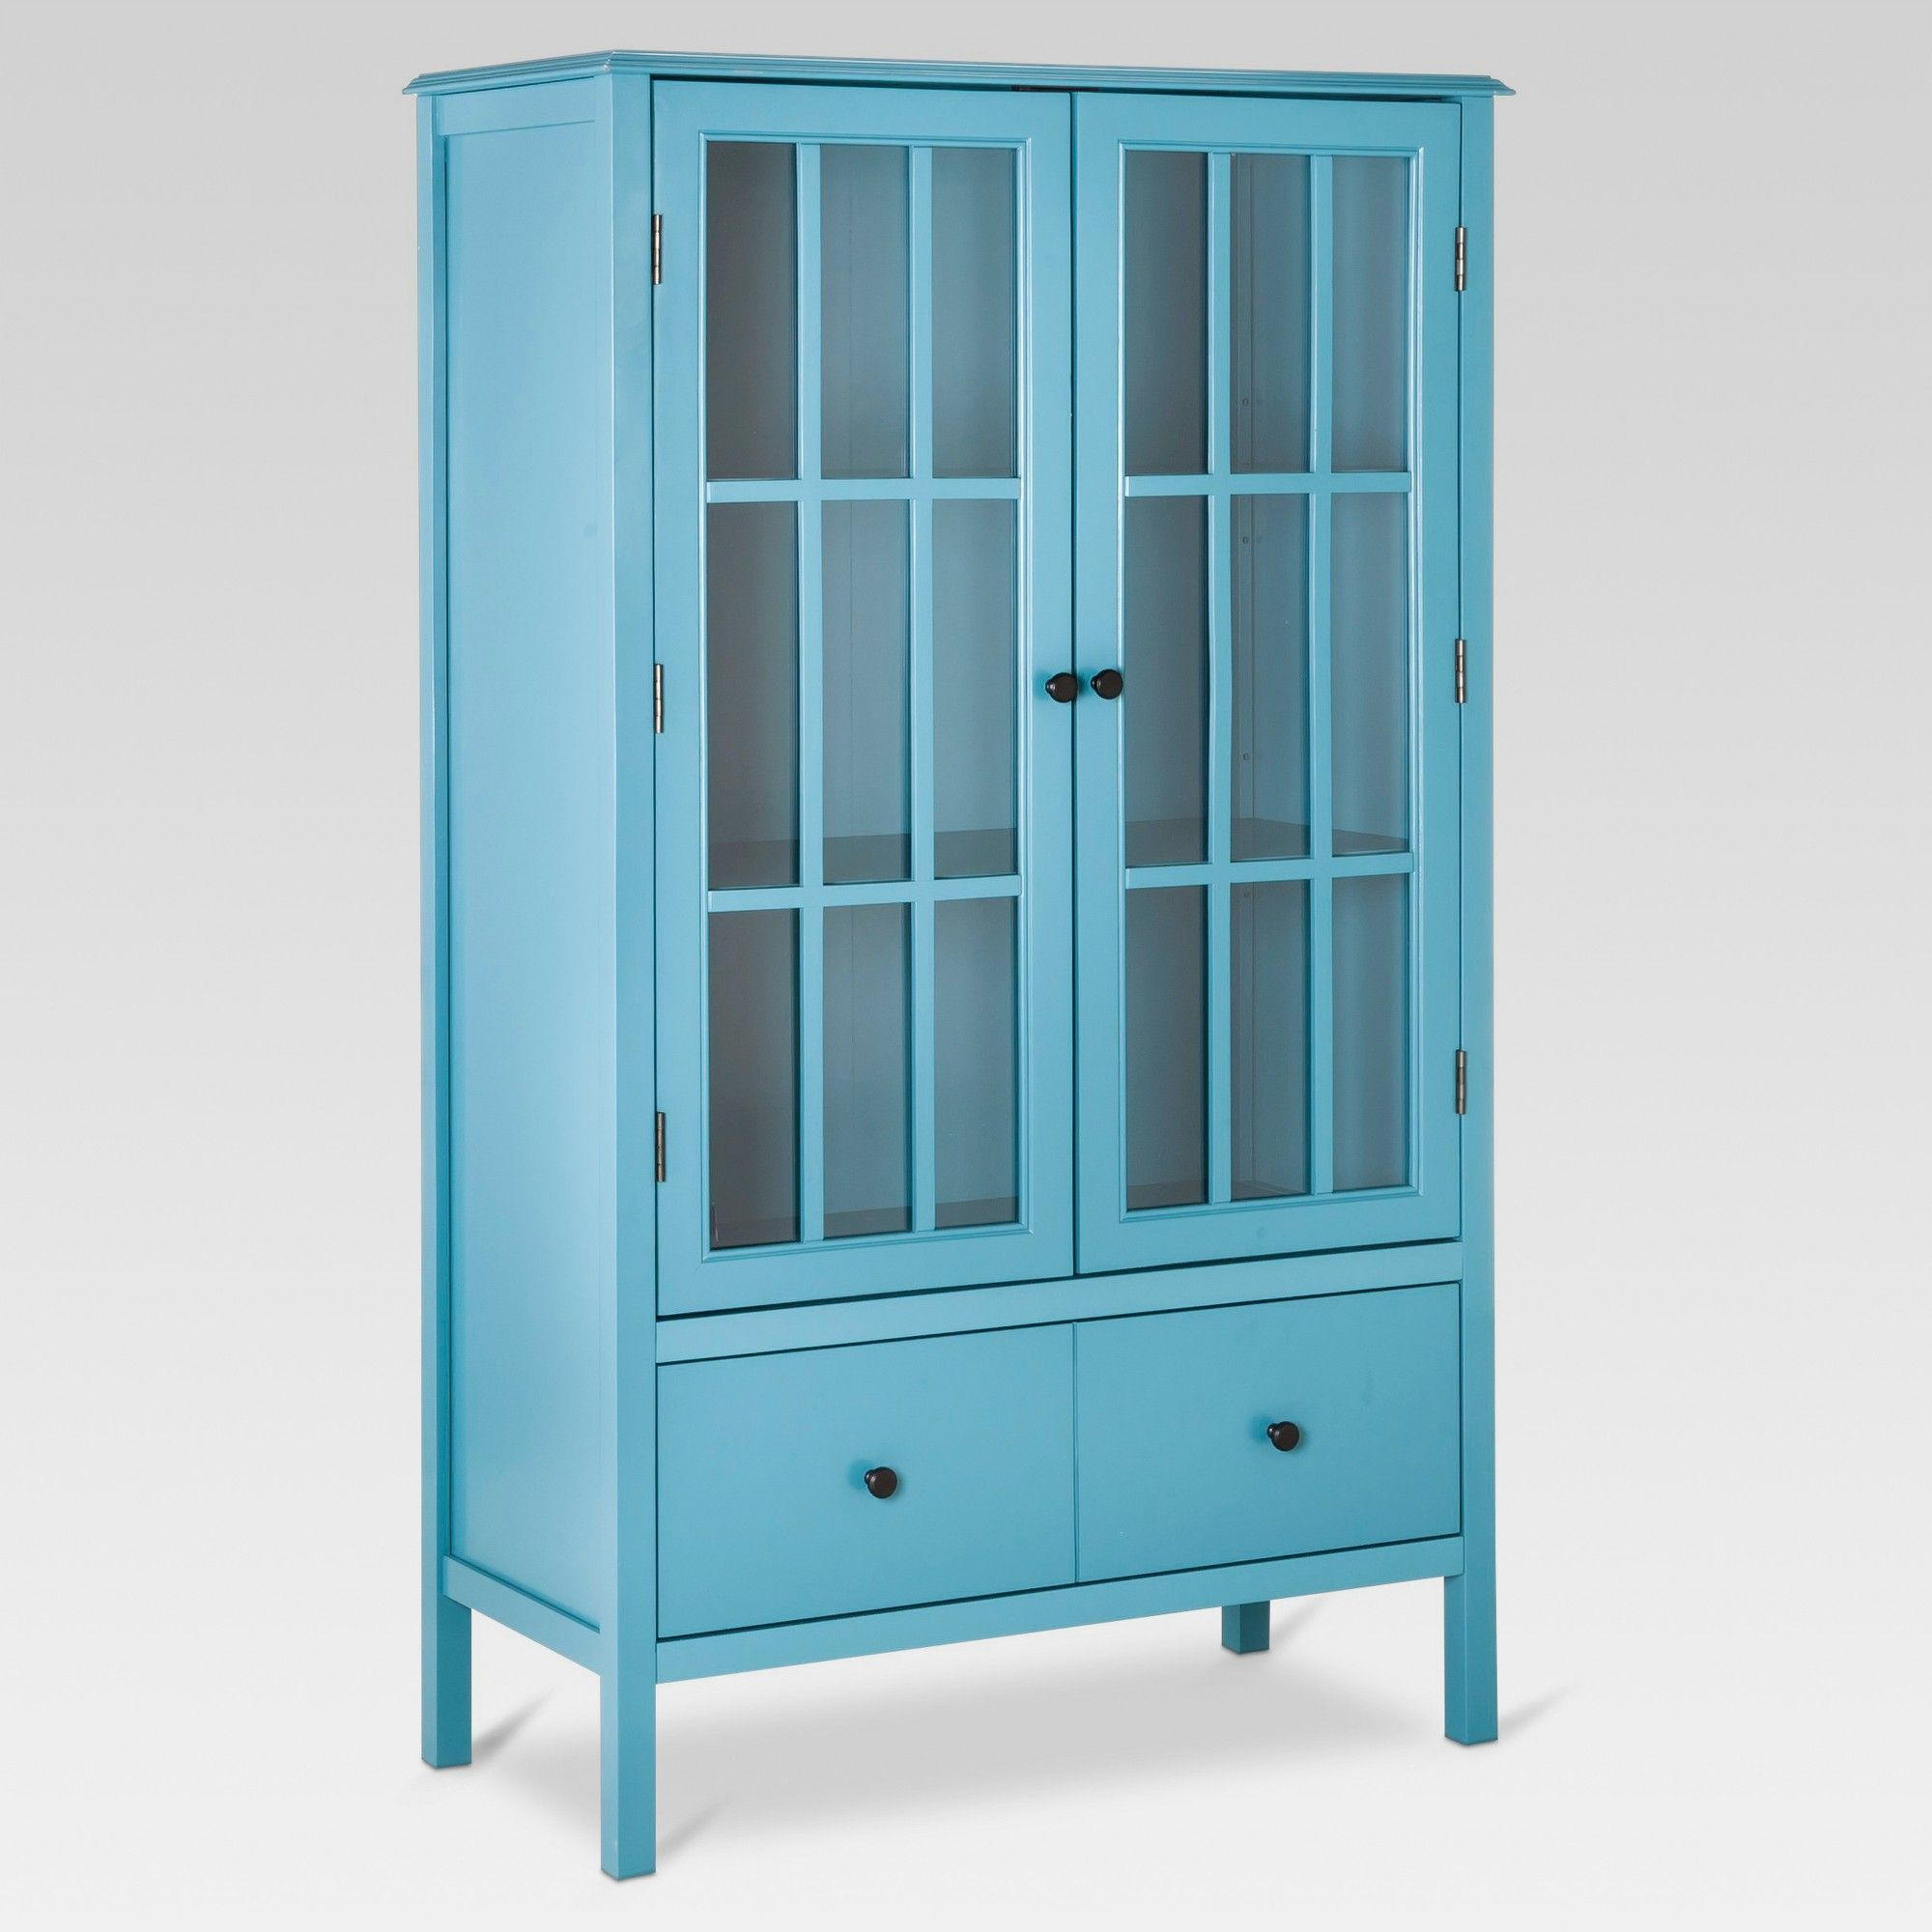 Windham Tall Storage Cabinet with Drawer Teal Blue  Threshold in